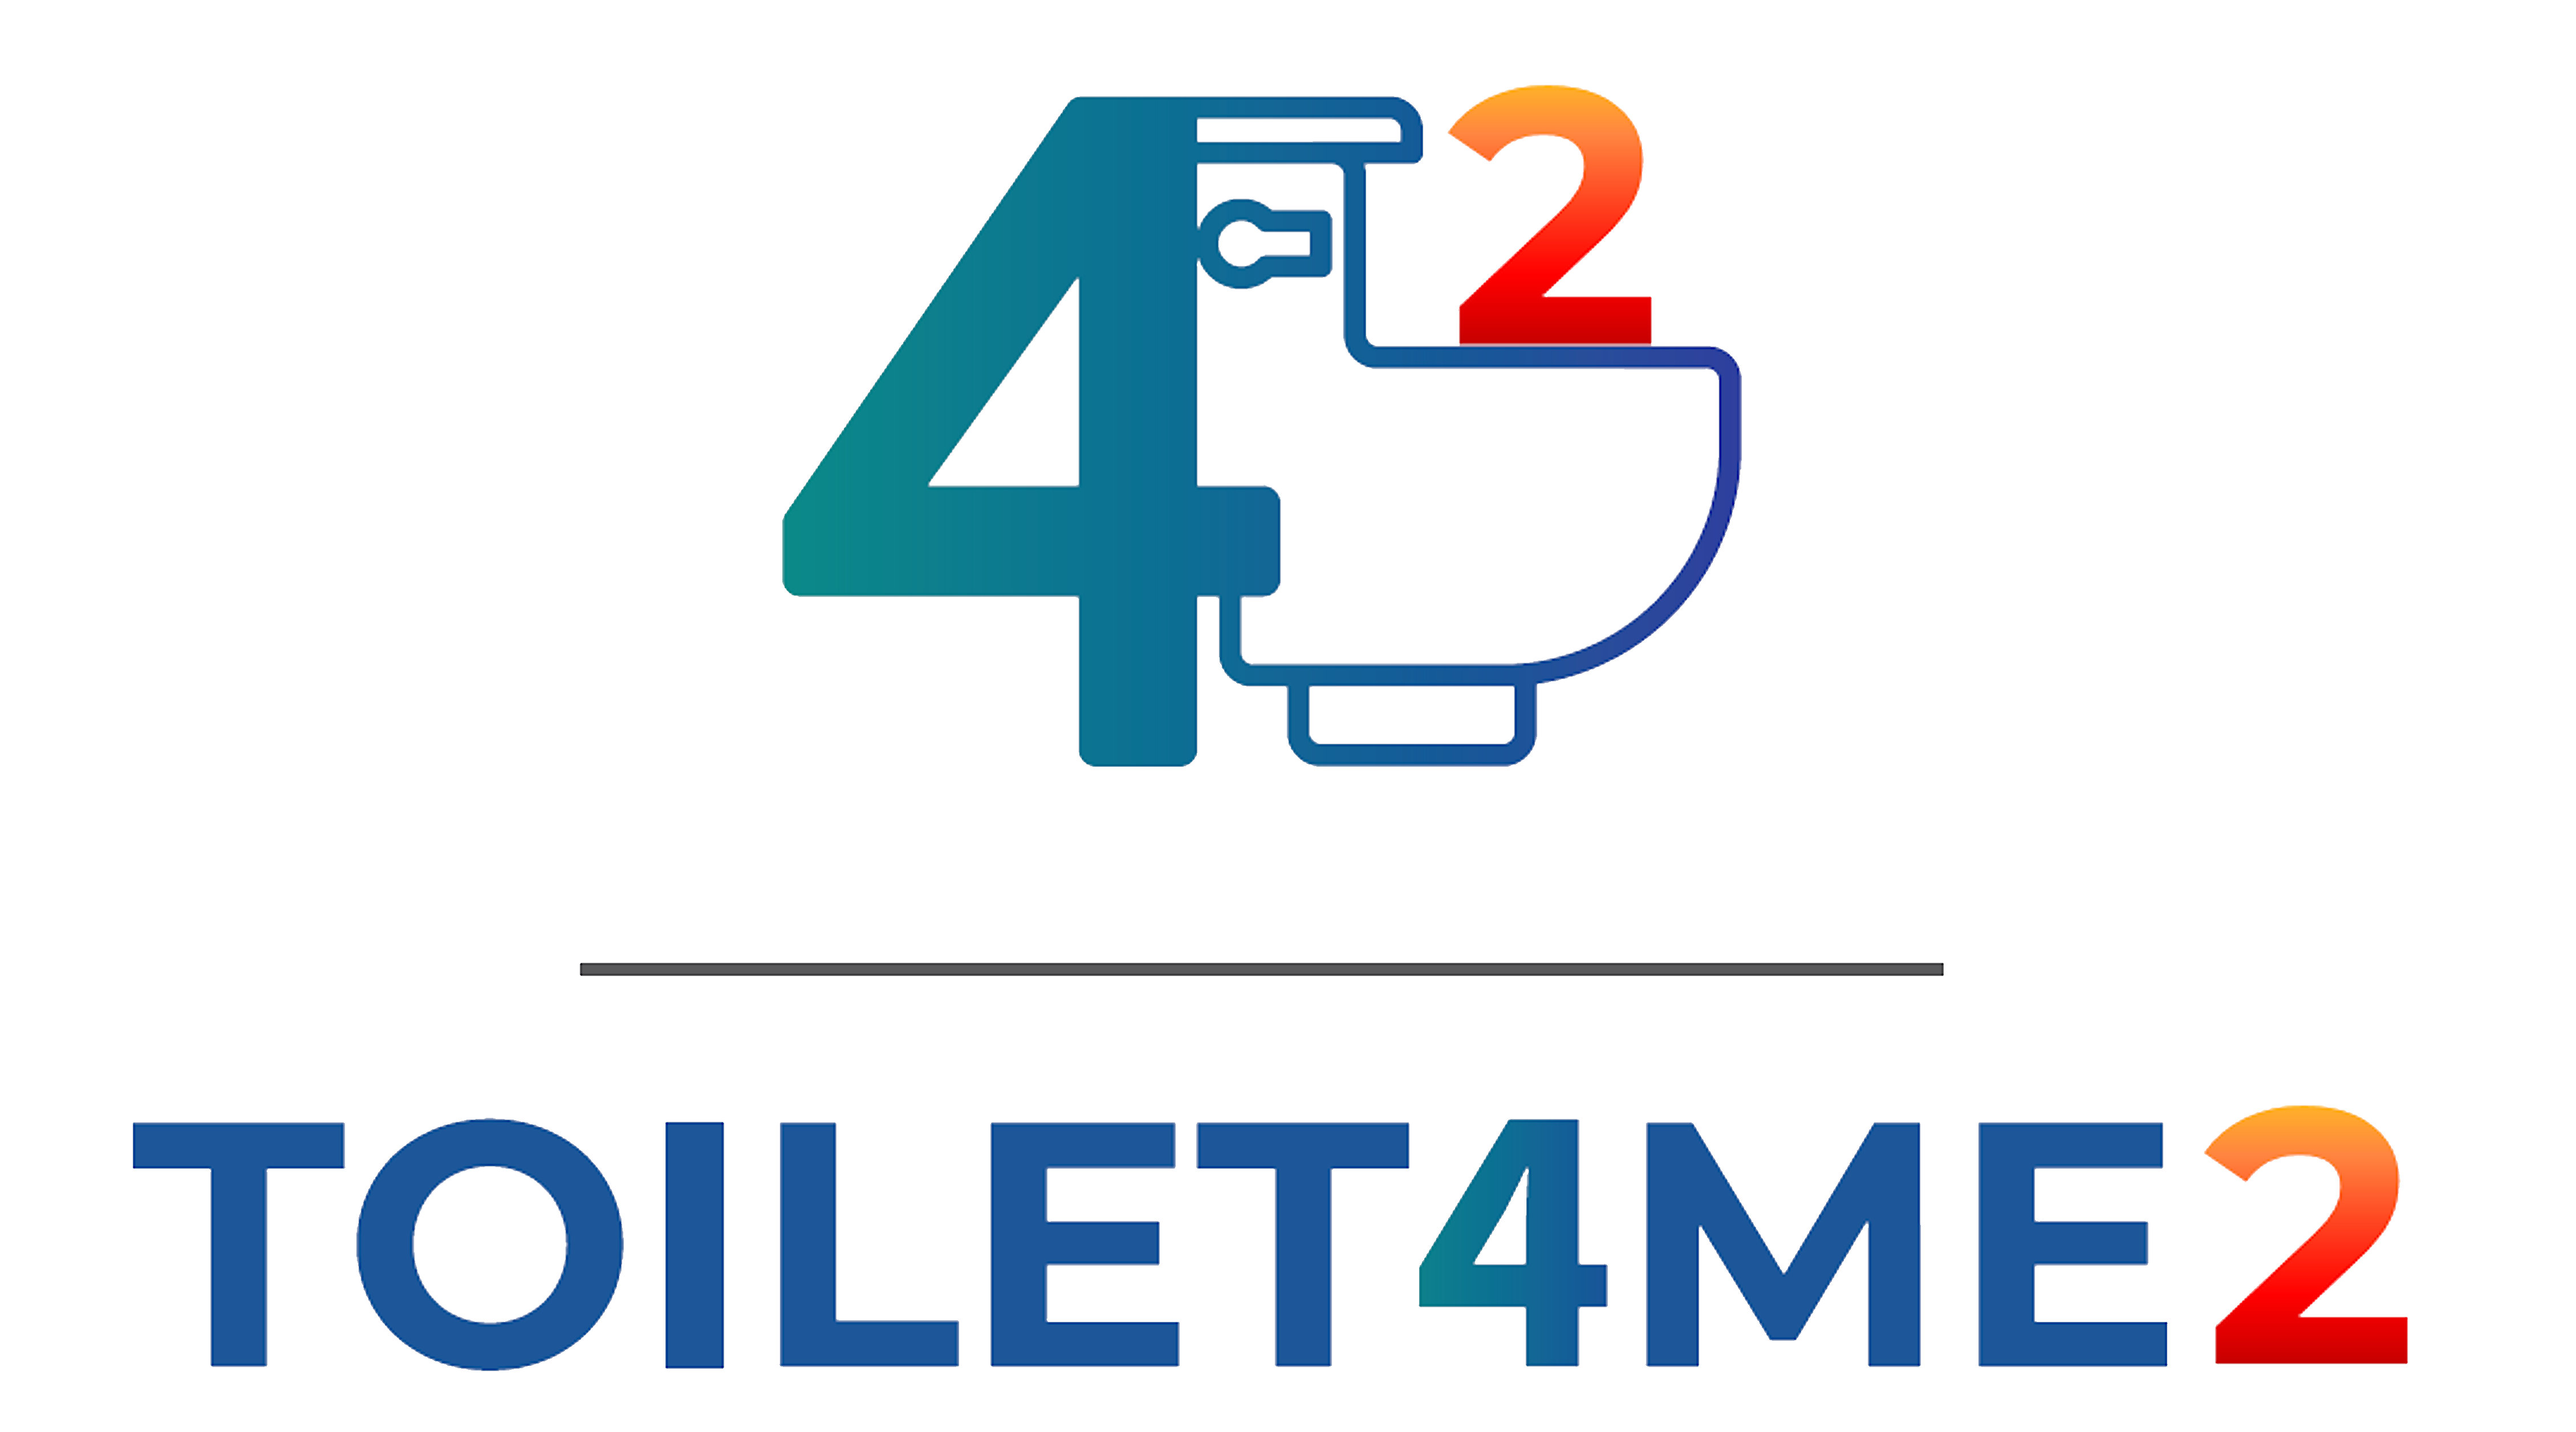 Toilet4me2 logo - active and assisted living